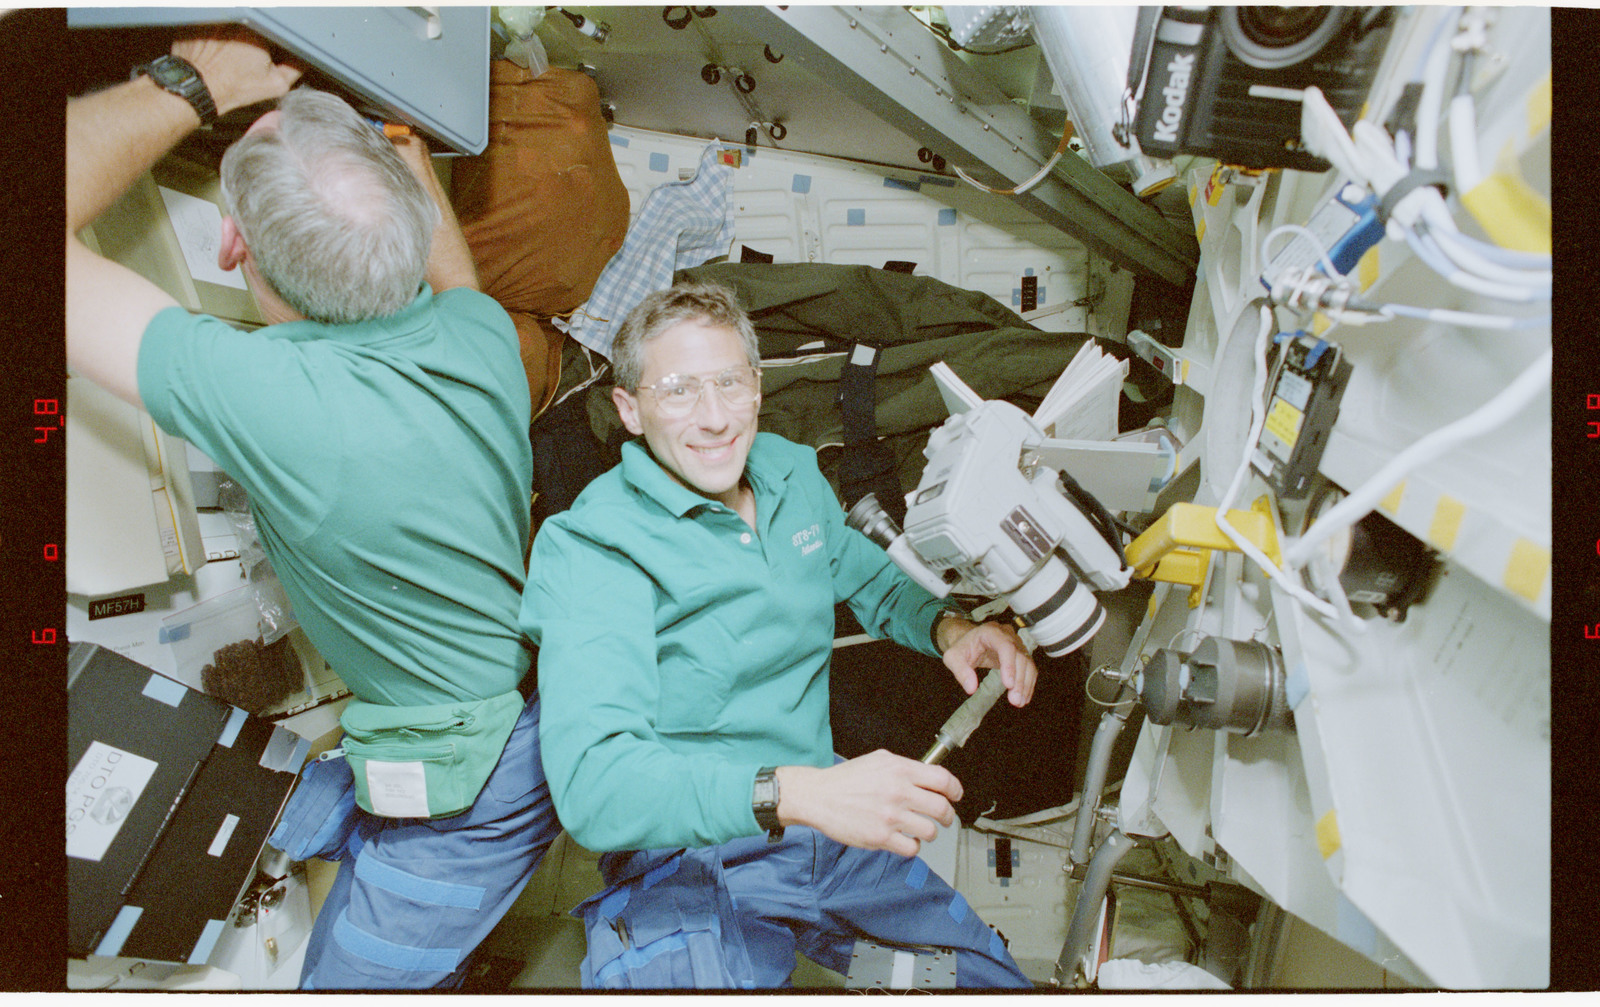 STS079-330-023 - STS-079 - STS-79 crew activities on the middeck